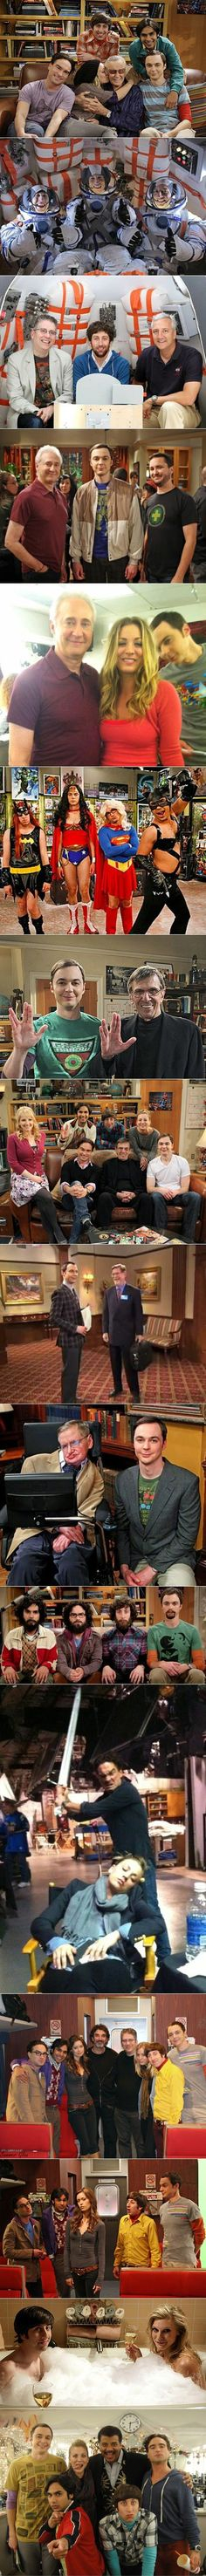 The Big Bang Theory with honoured guests :D